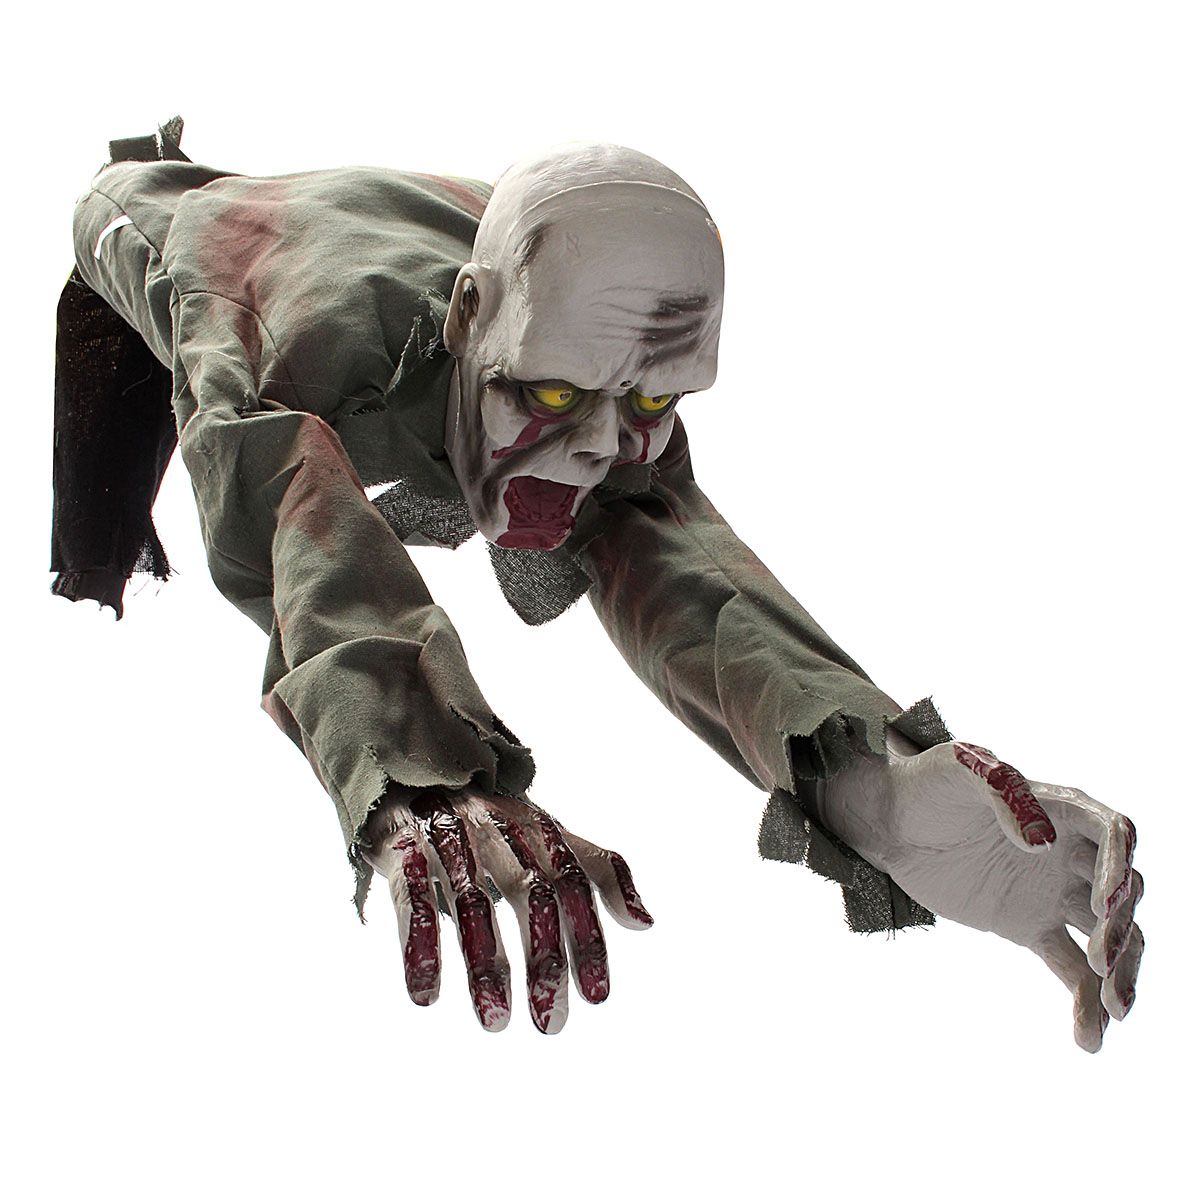 Moving Halloween Decorations: Crawling Zombie Scary Horror Bloody Haunted Animated Prop